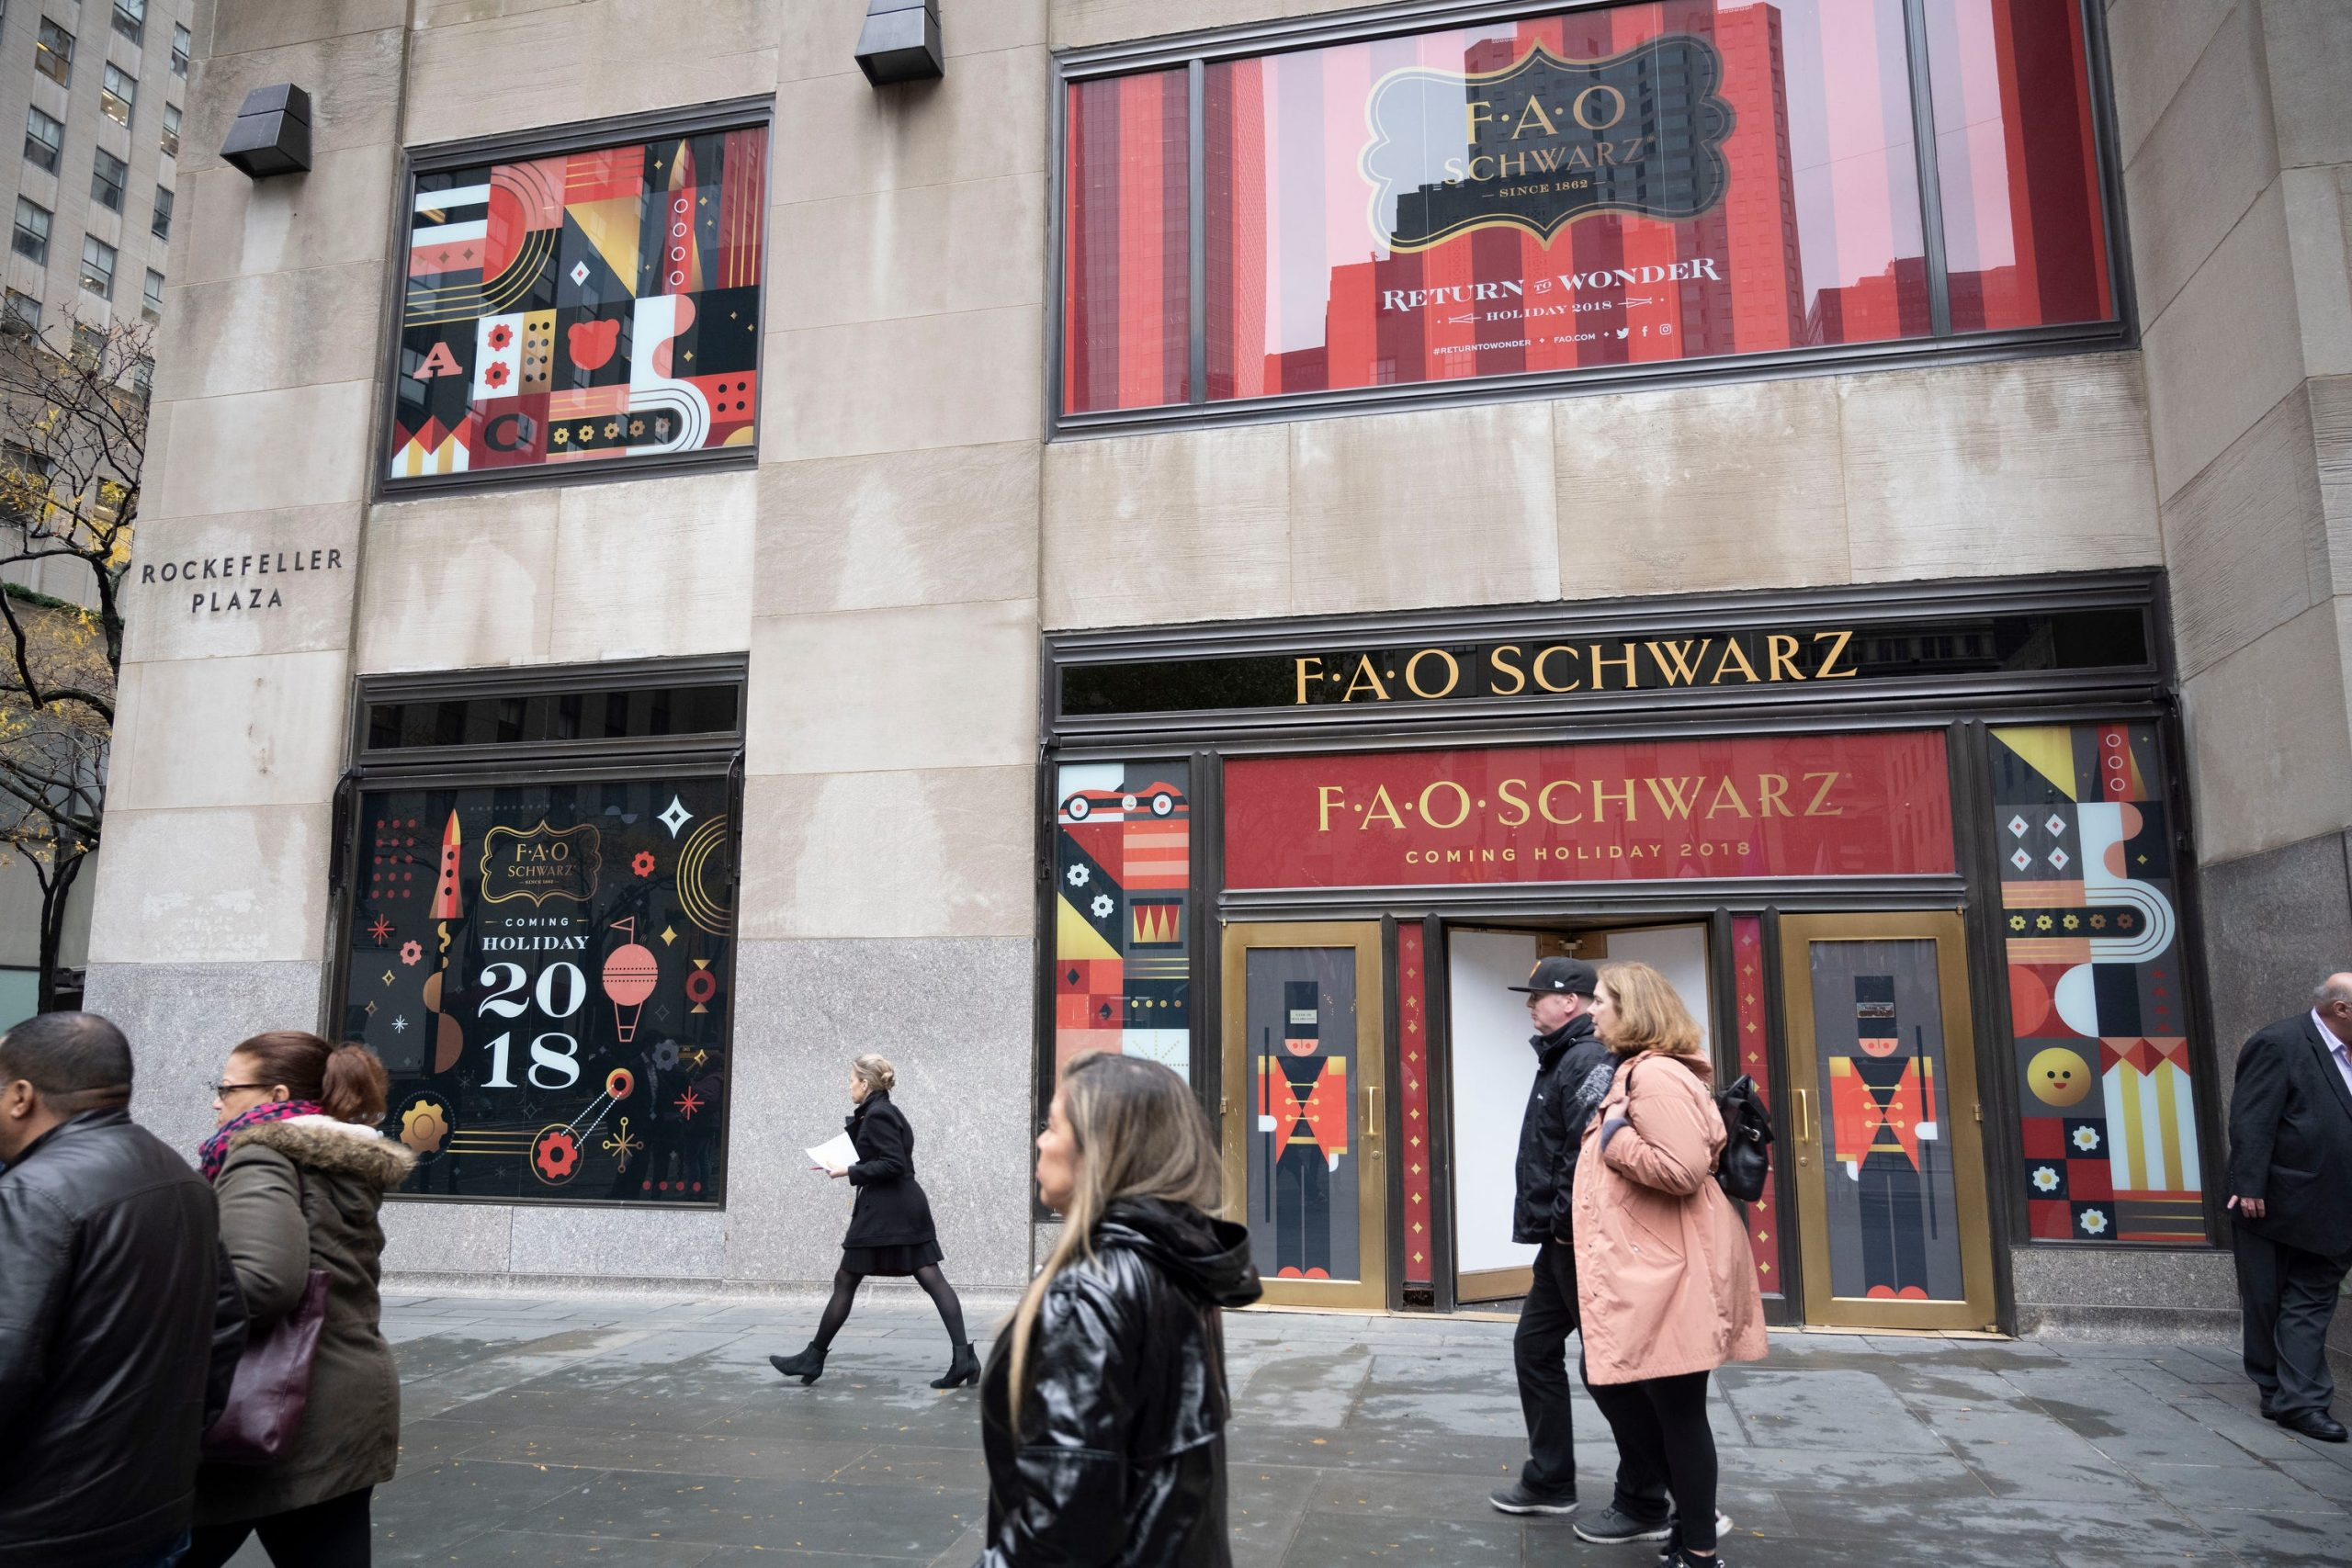 Airbnb launches holiday promotion allowing New Yorkers to stay overnight at FAO Schwarz